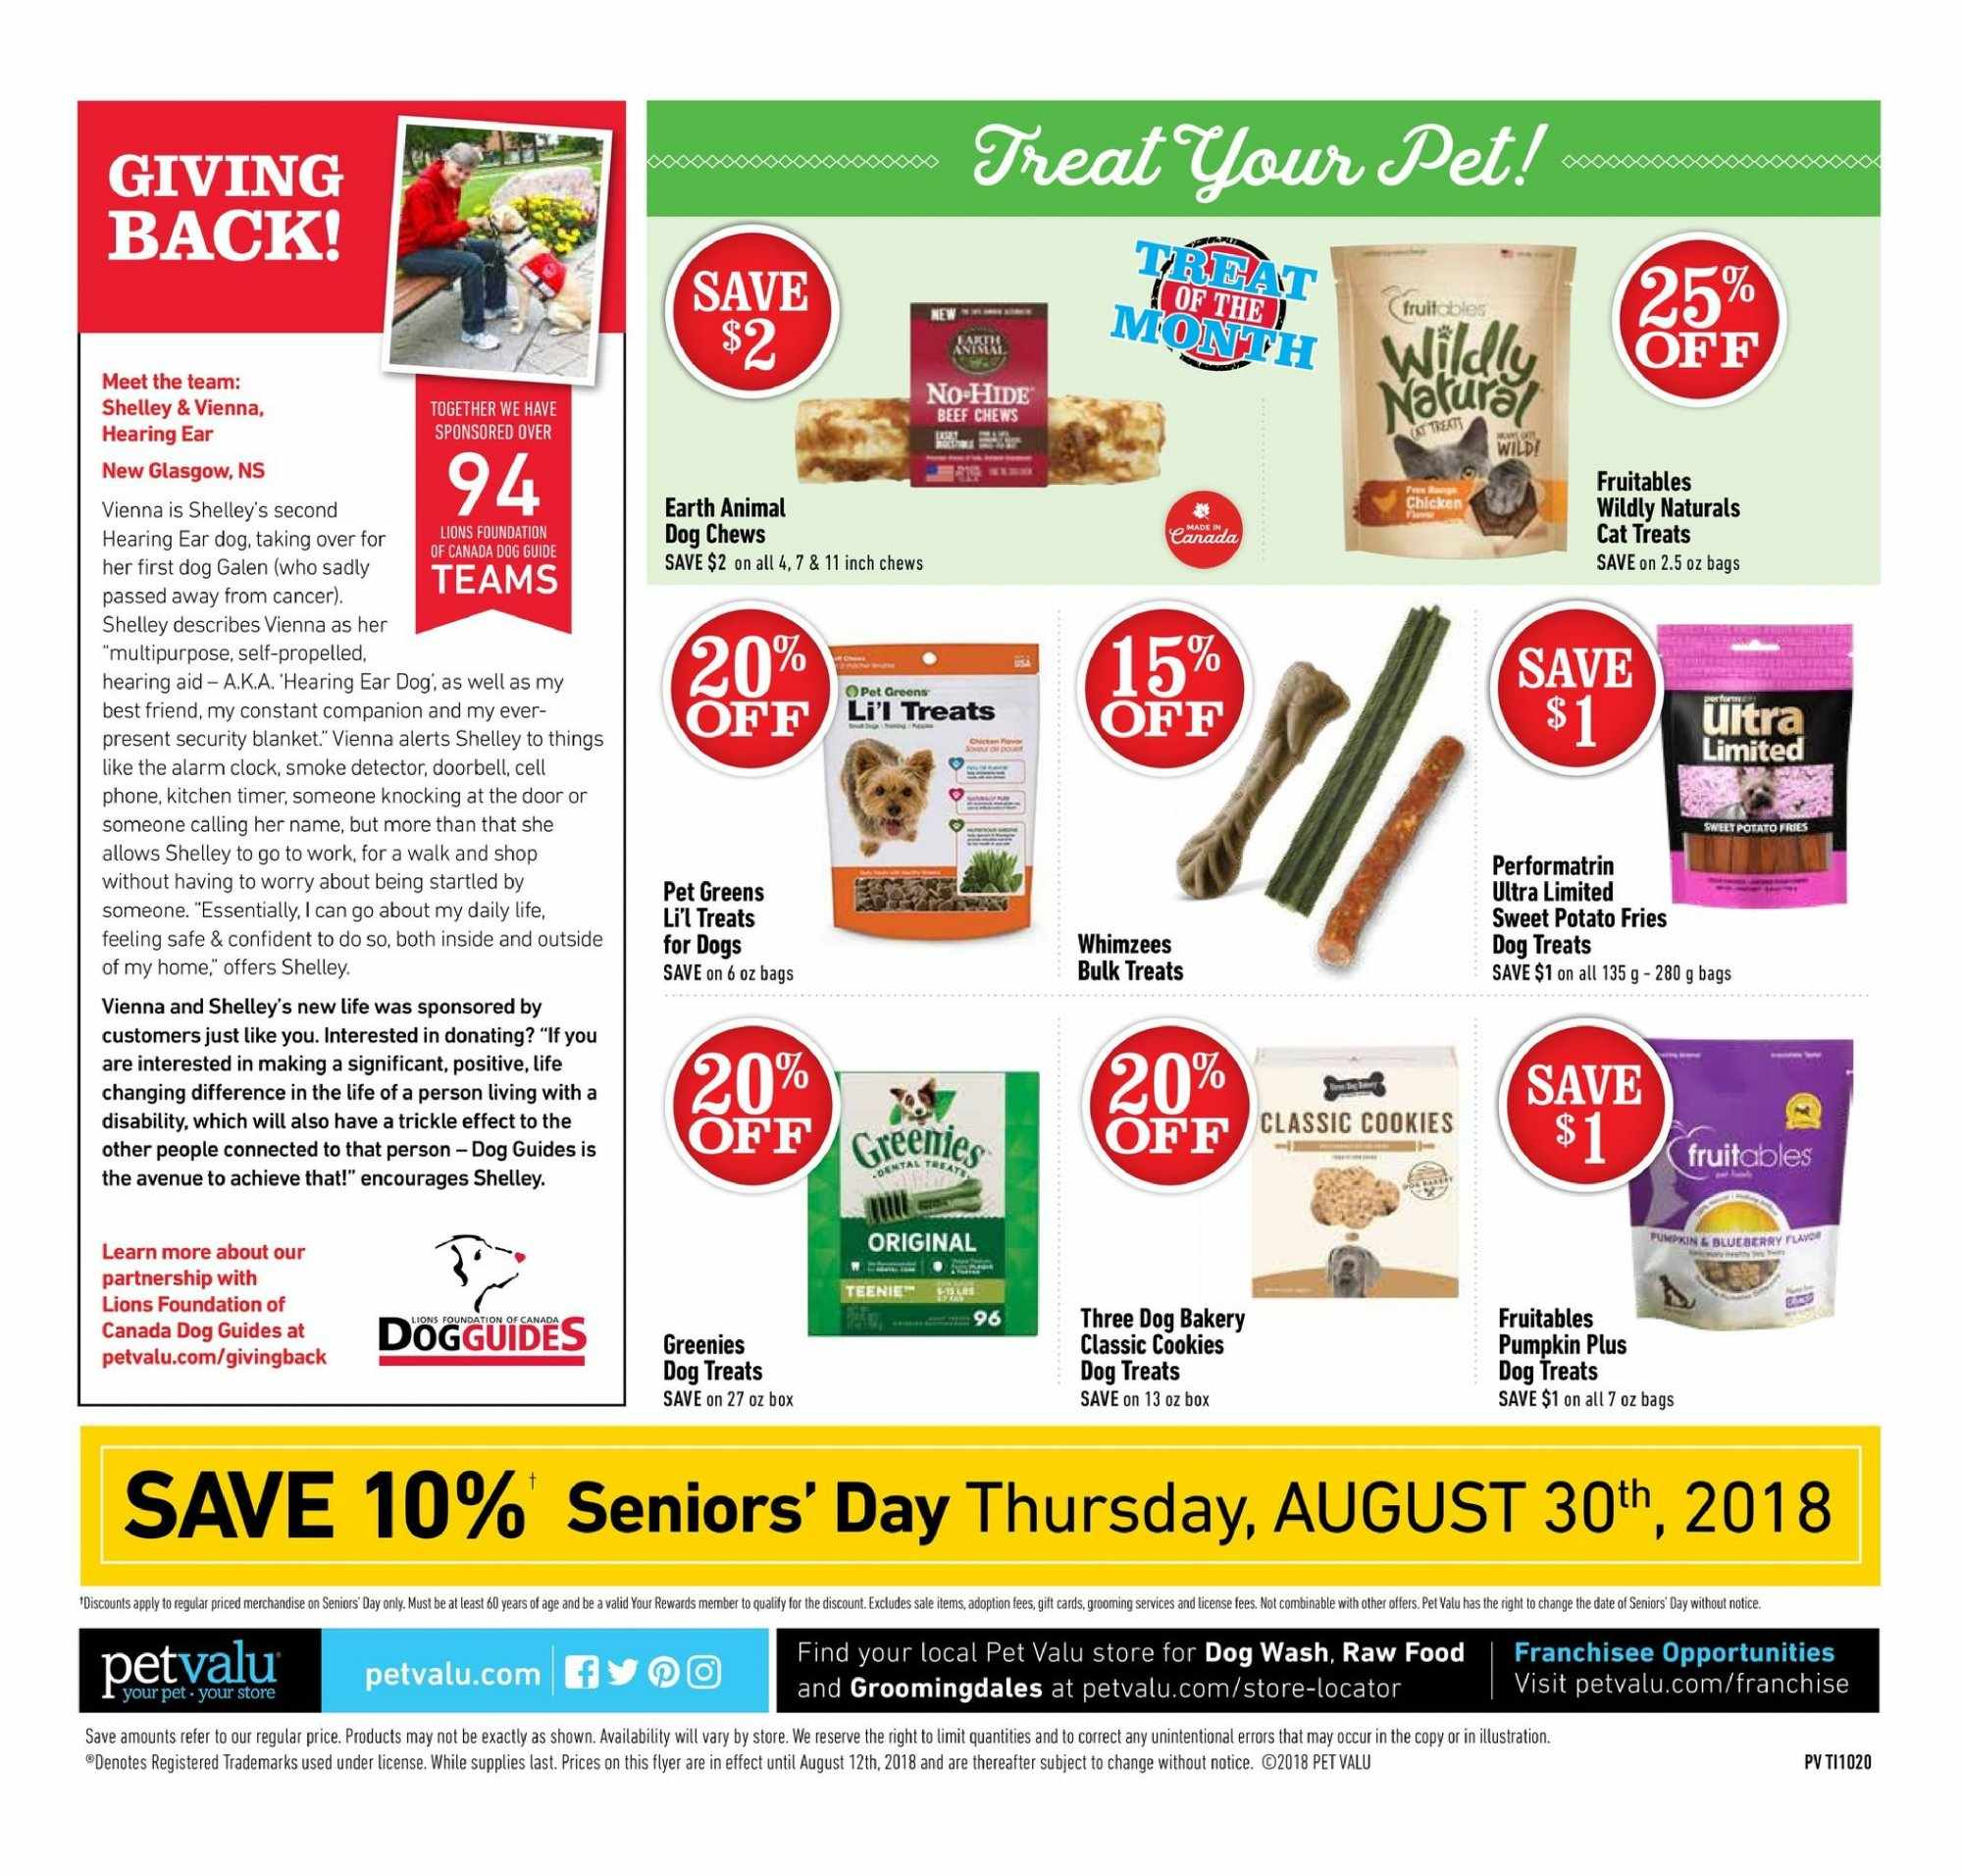 Pet Valu Flyer - August 02, 2018 - August 12, 2018 - Sales products - bag, beef meat, blanket, clock, cookies, door, doorbell, foundation, kitchen timer, safe, sweet potatoes, timer, pet, potato fries, smoke detector. Page 4.